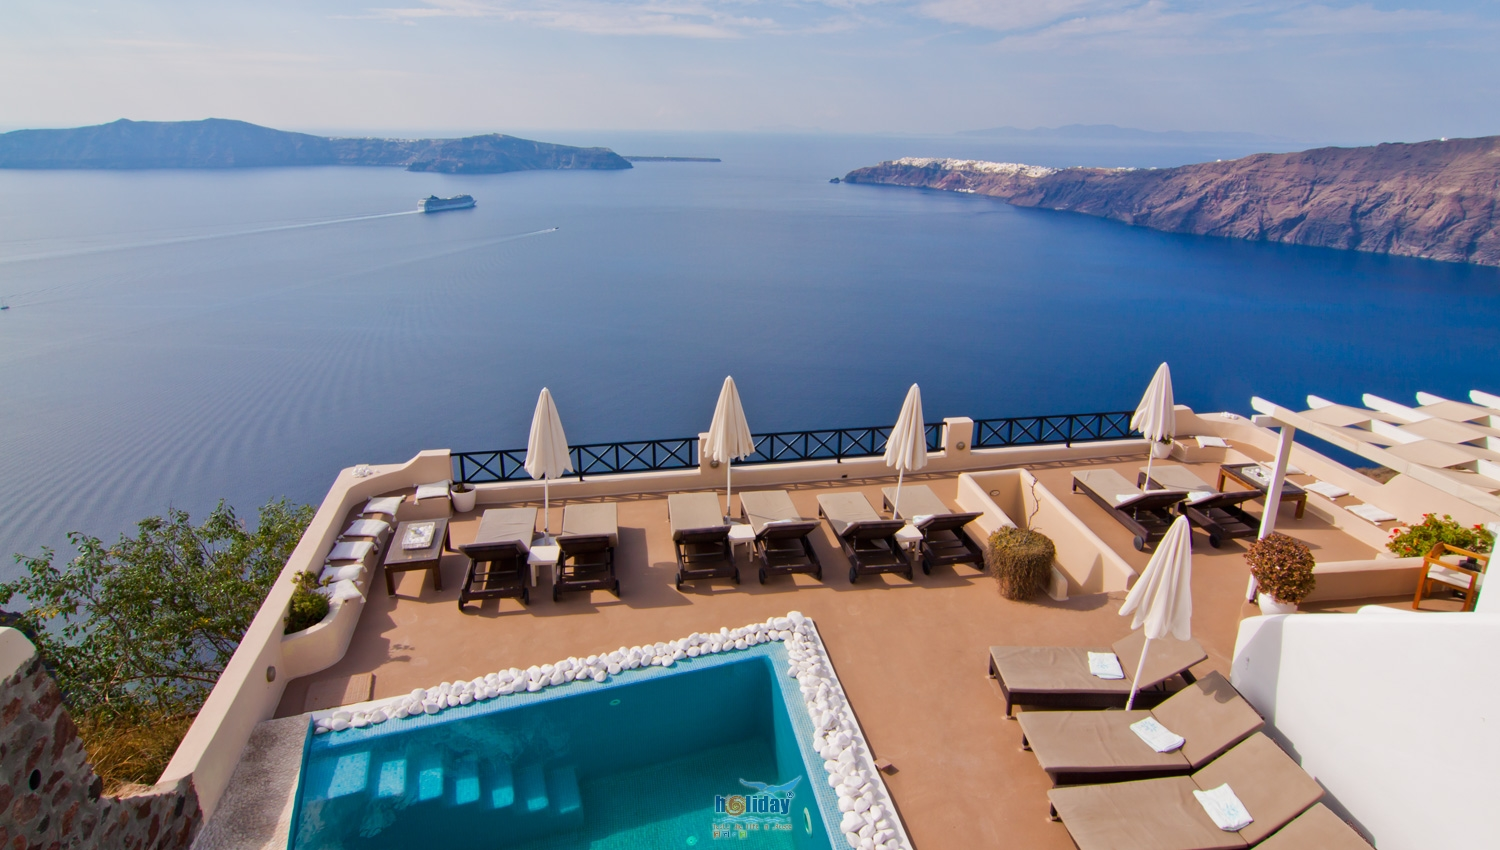 Afroessa hotel hotels in imerovigli santorini greece for Hotels santorin